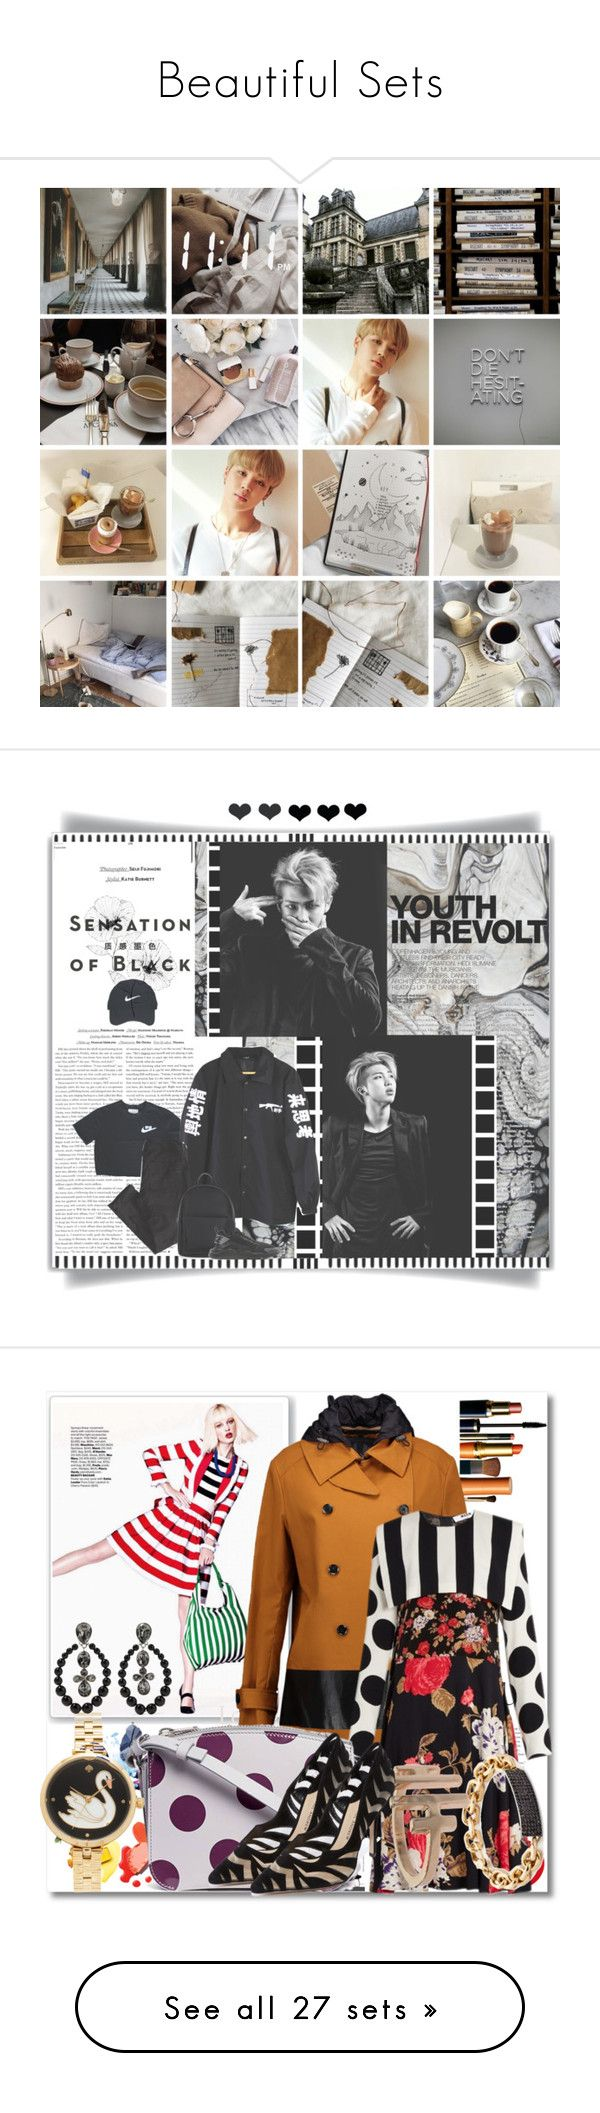 """Beautiful Sets"" by theswagmasterminyoongi ❤ liked on Polyvore featuring art, White Label, Vision, American Eagle Outfitters, New Look, Nike Golf, Hedi Slimane, NIKE, WALL and Belstaff"